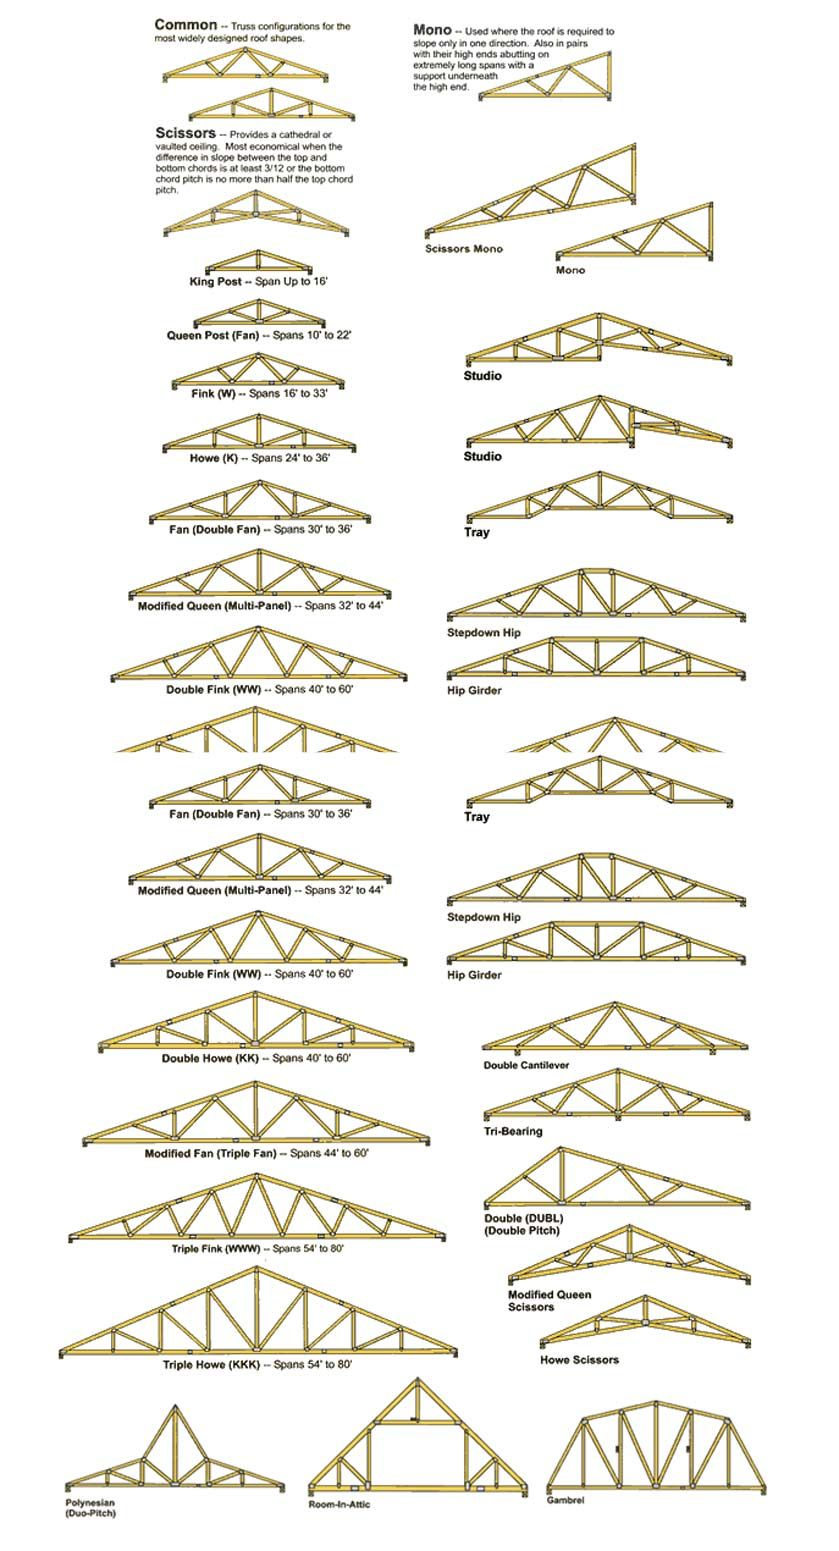 Redesigning A Roof Alpha Construction Group Roof Truss Design Roof Trusses Roof Architecture